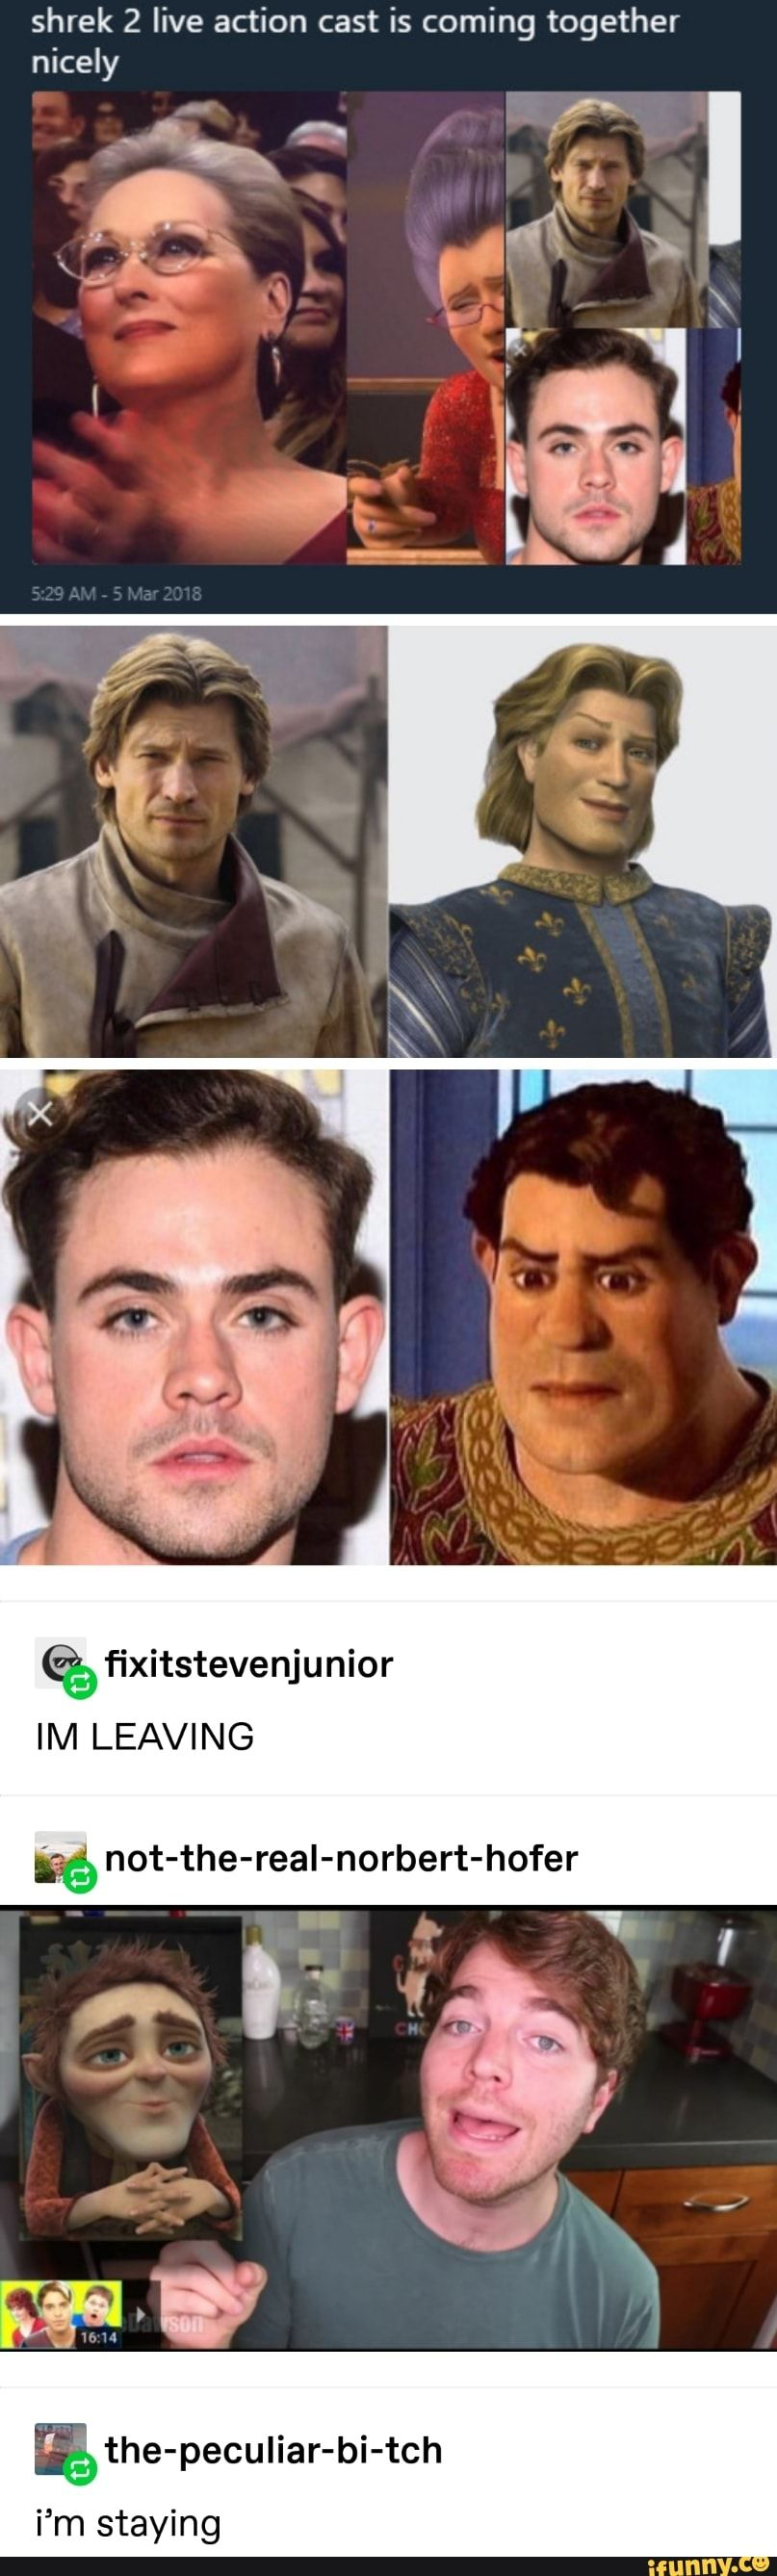 Shrek 2 live action cast is coming together nicely - iFunny :) | It cast,  Live action, Funny video memes